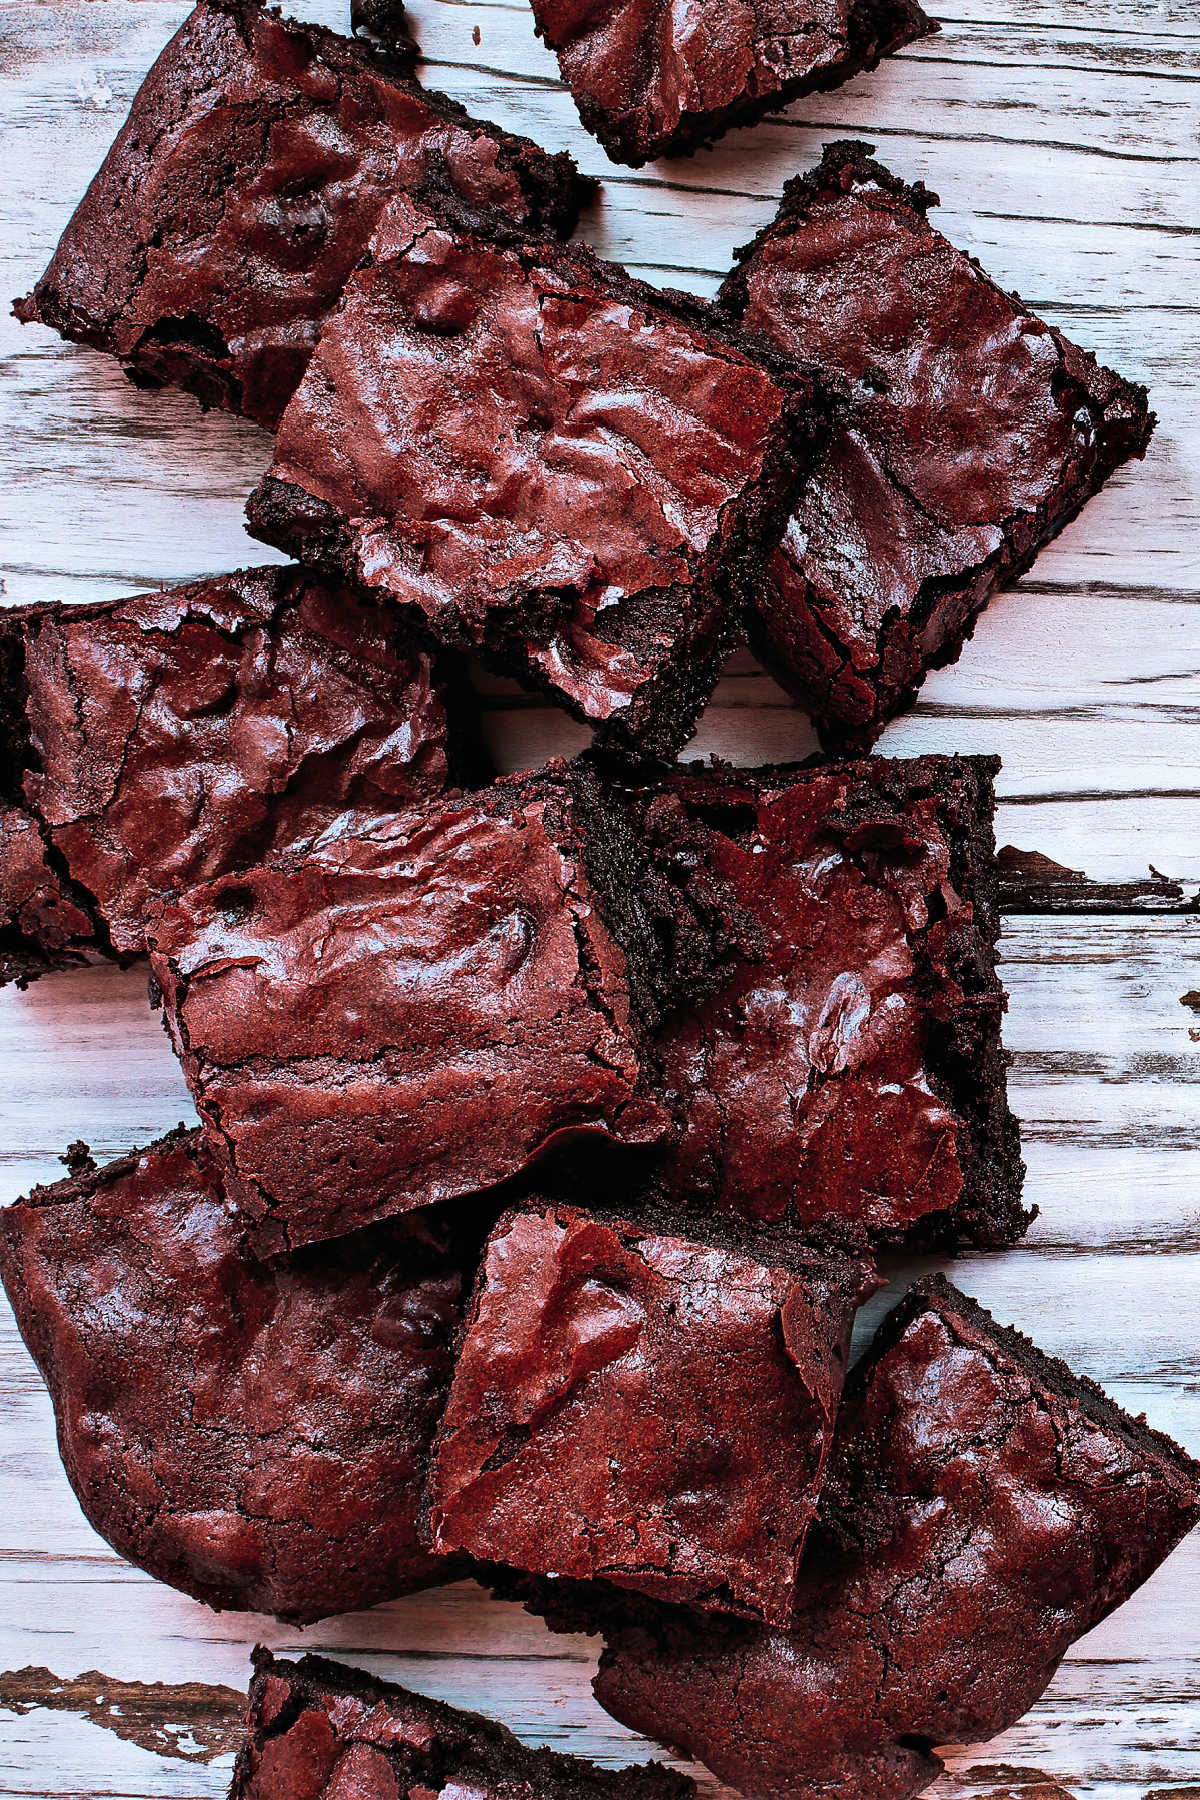 Squares of delicious, homemade cocoa powder brownies stacked on a white rustic wooden table background. Image shot from top view overhead.